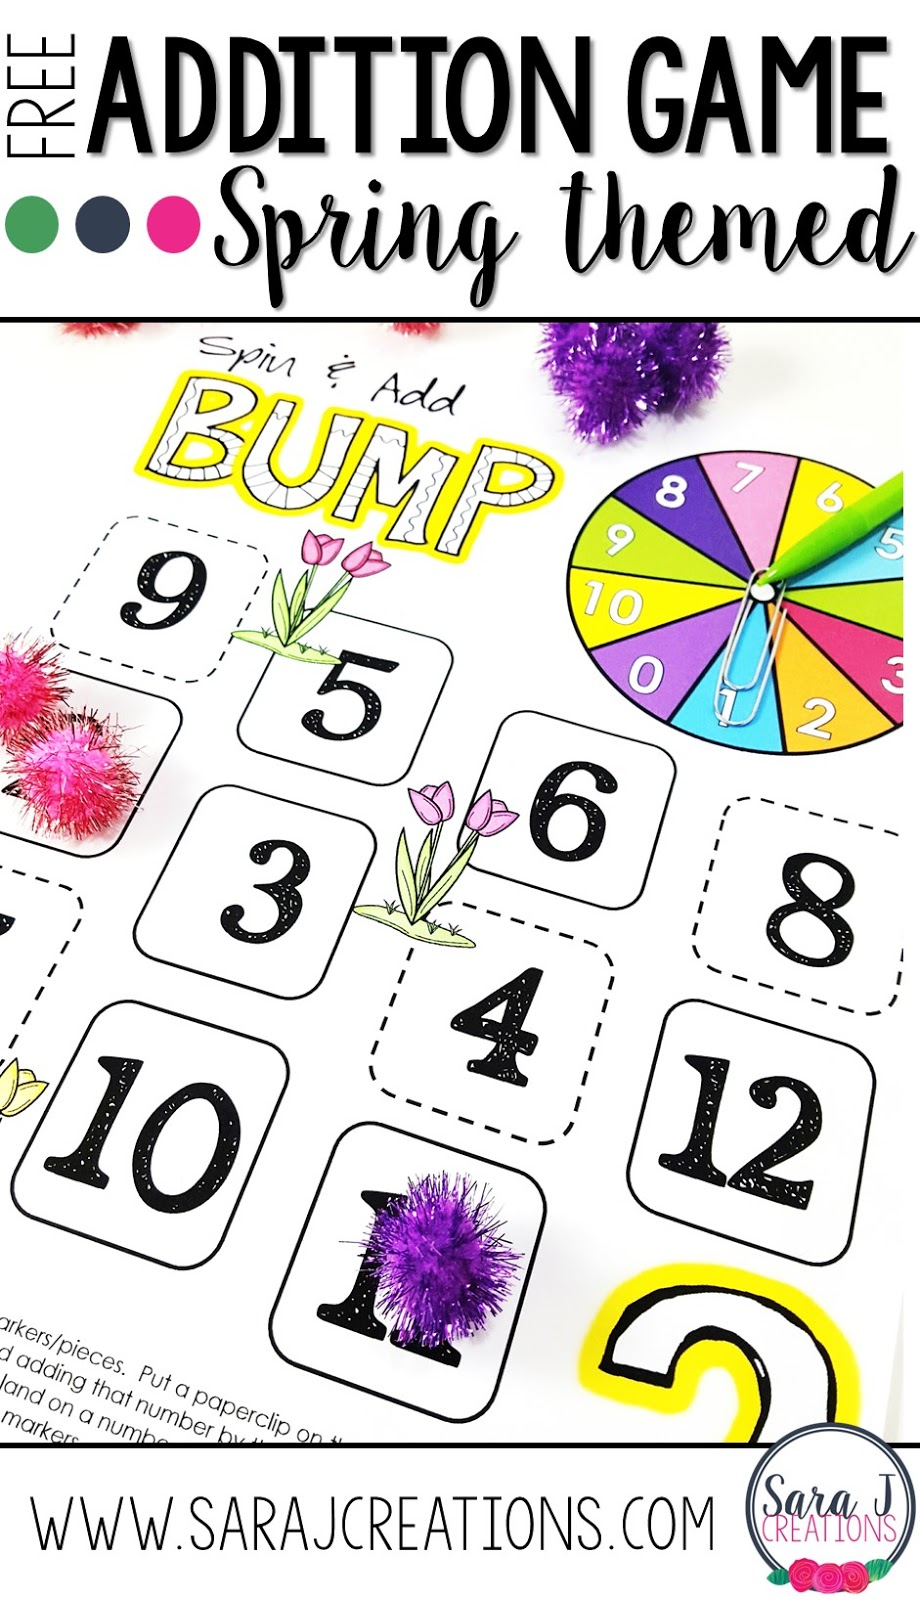 Free addition math game boards for practicing math fact fluency